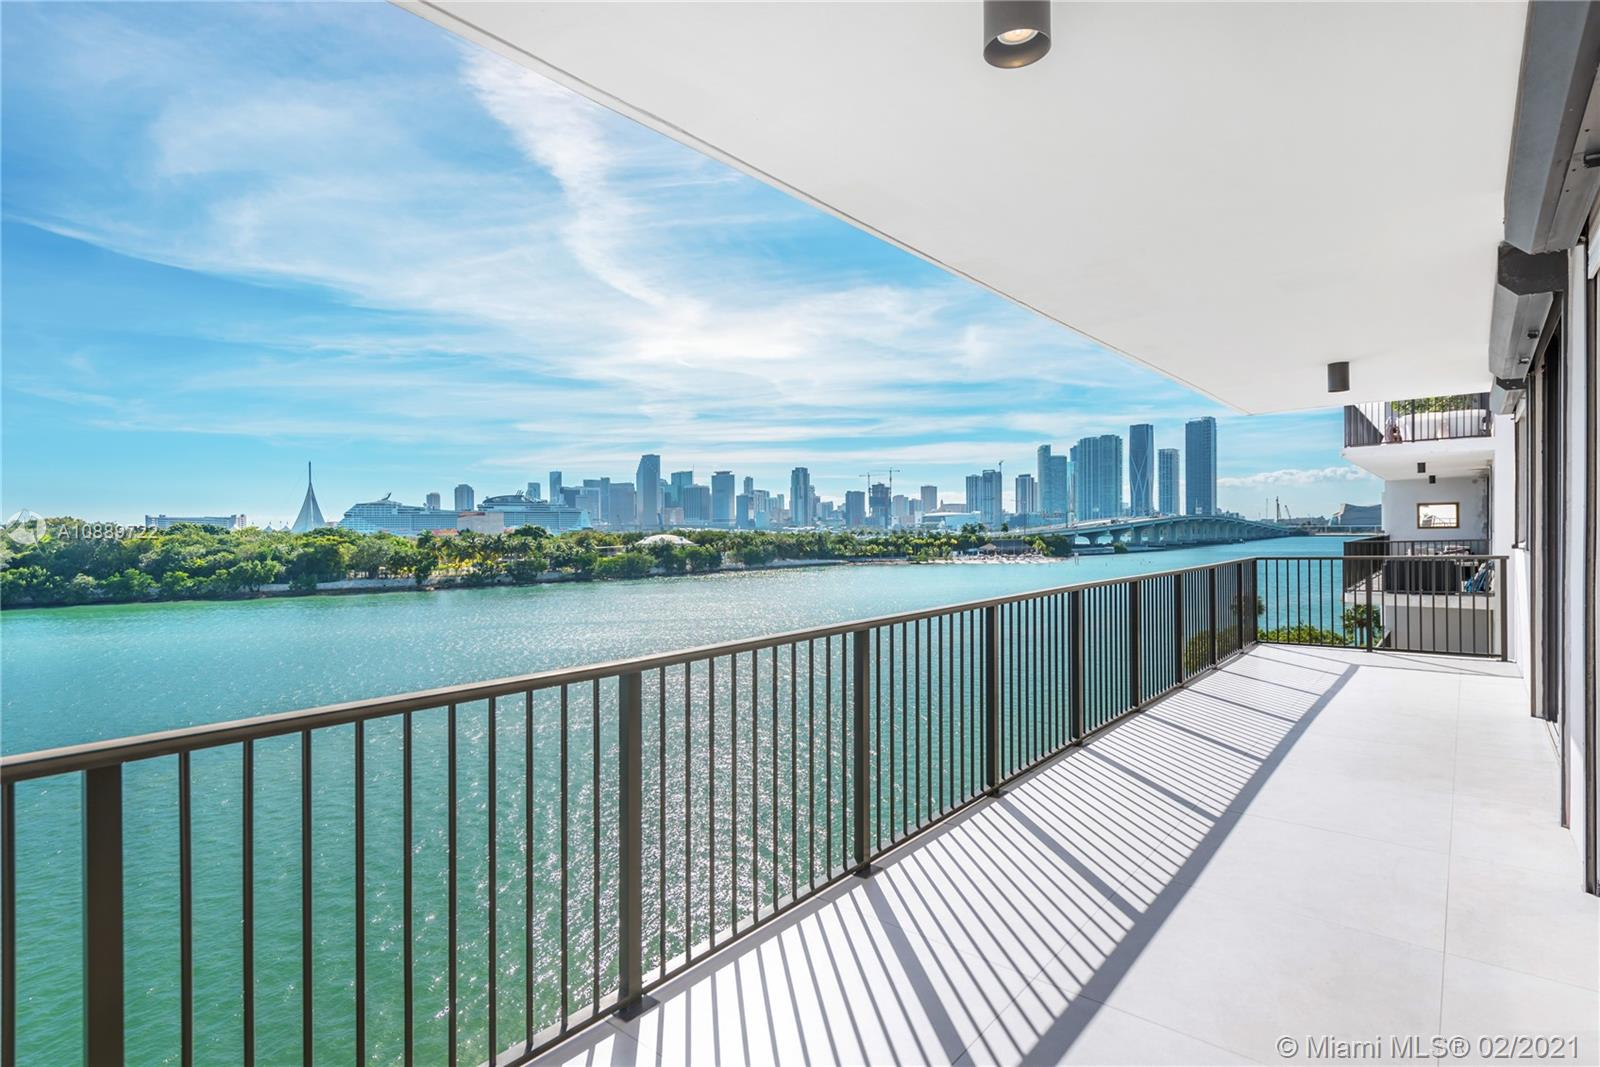 Light & bright sleek white modern residence boasts 3 beds, 2.5 baths, 2,010 SqFt & nearly 700 SqFt of 2 wide terraces overlooking Biscayne Bay, Cruise Ships & Downtown Miami Skyline. Enter through the semi-private elevator landing (only 2 units) into an expansive combined living/dining room area with unobstructed views, a perfect place for a quiet night in or entertaining guests. Enjoy a custom Italian Kitchen providing ample storage space, professional appliance suite & a generously sized stone topped center island. Spacious master offers the ultimate in privacy and magnificent water views through floor-to-ceiling glass doors. Amenities include double height gallery-like lobby, 24 hour security, valet, 2 bayfront pools & tennis courts.. One of the best building in Miami!